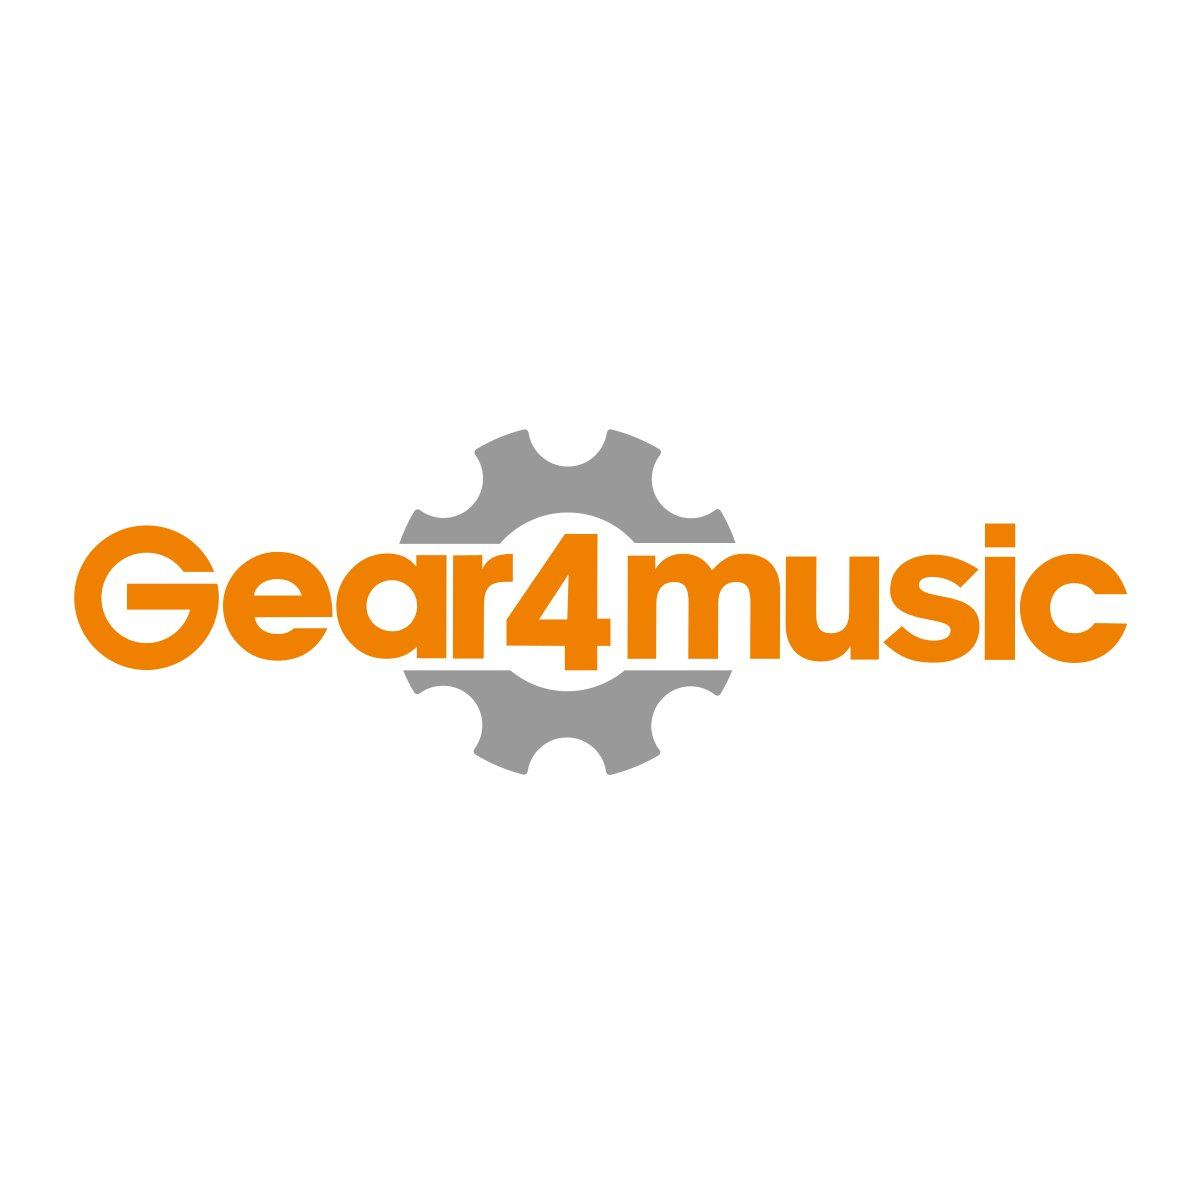 Gear4music stand